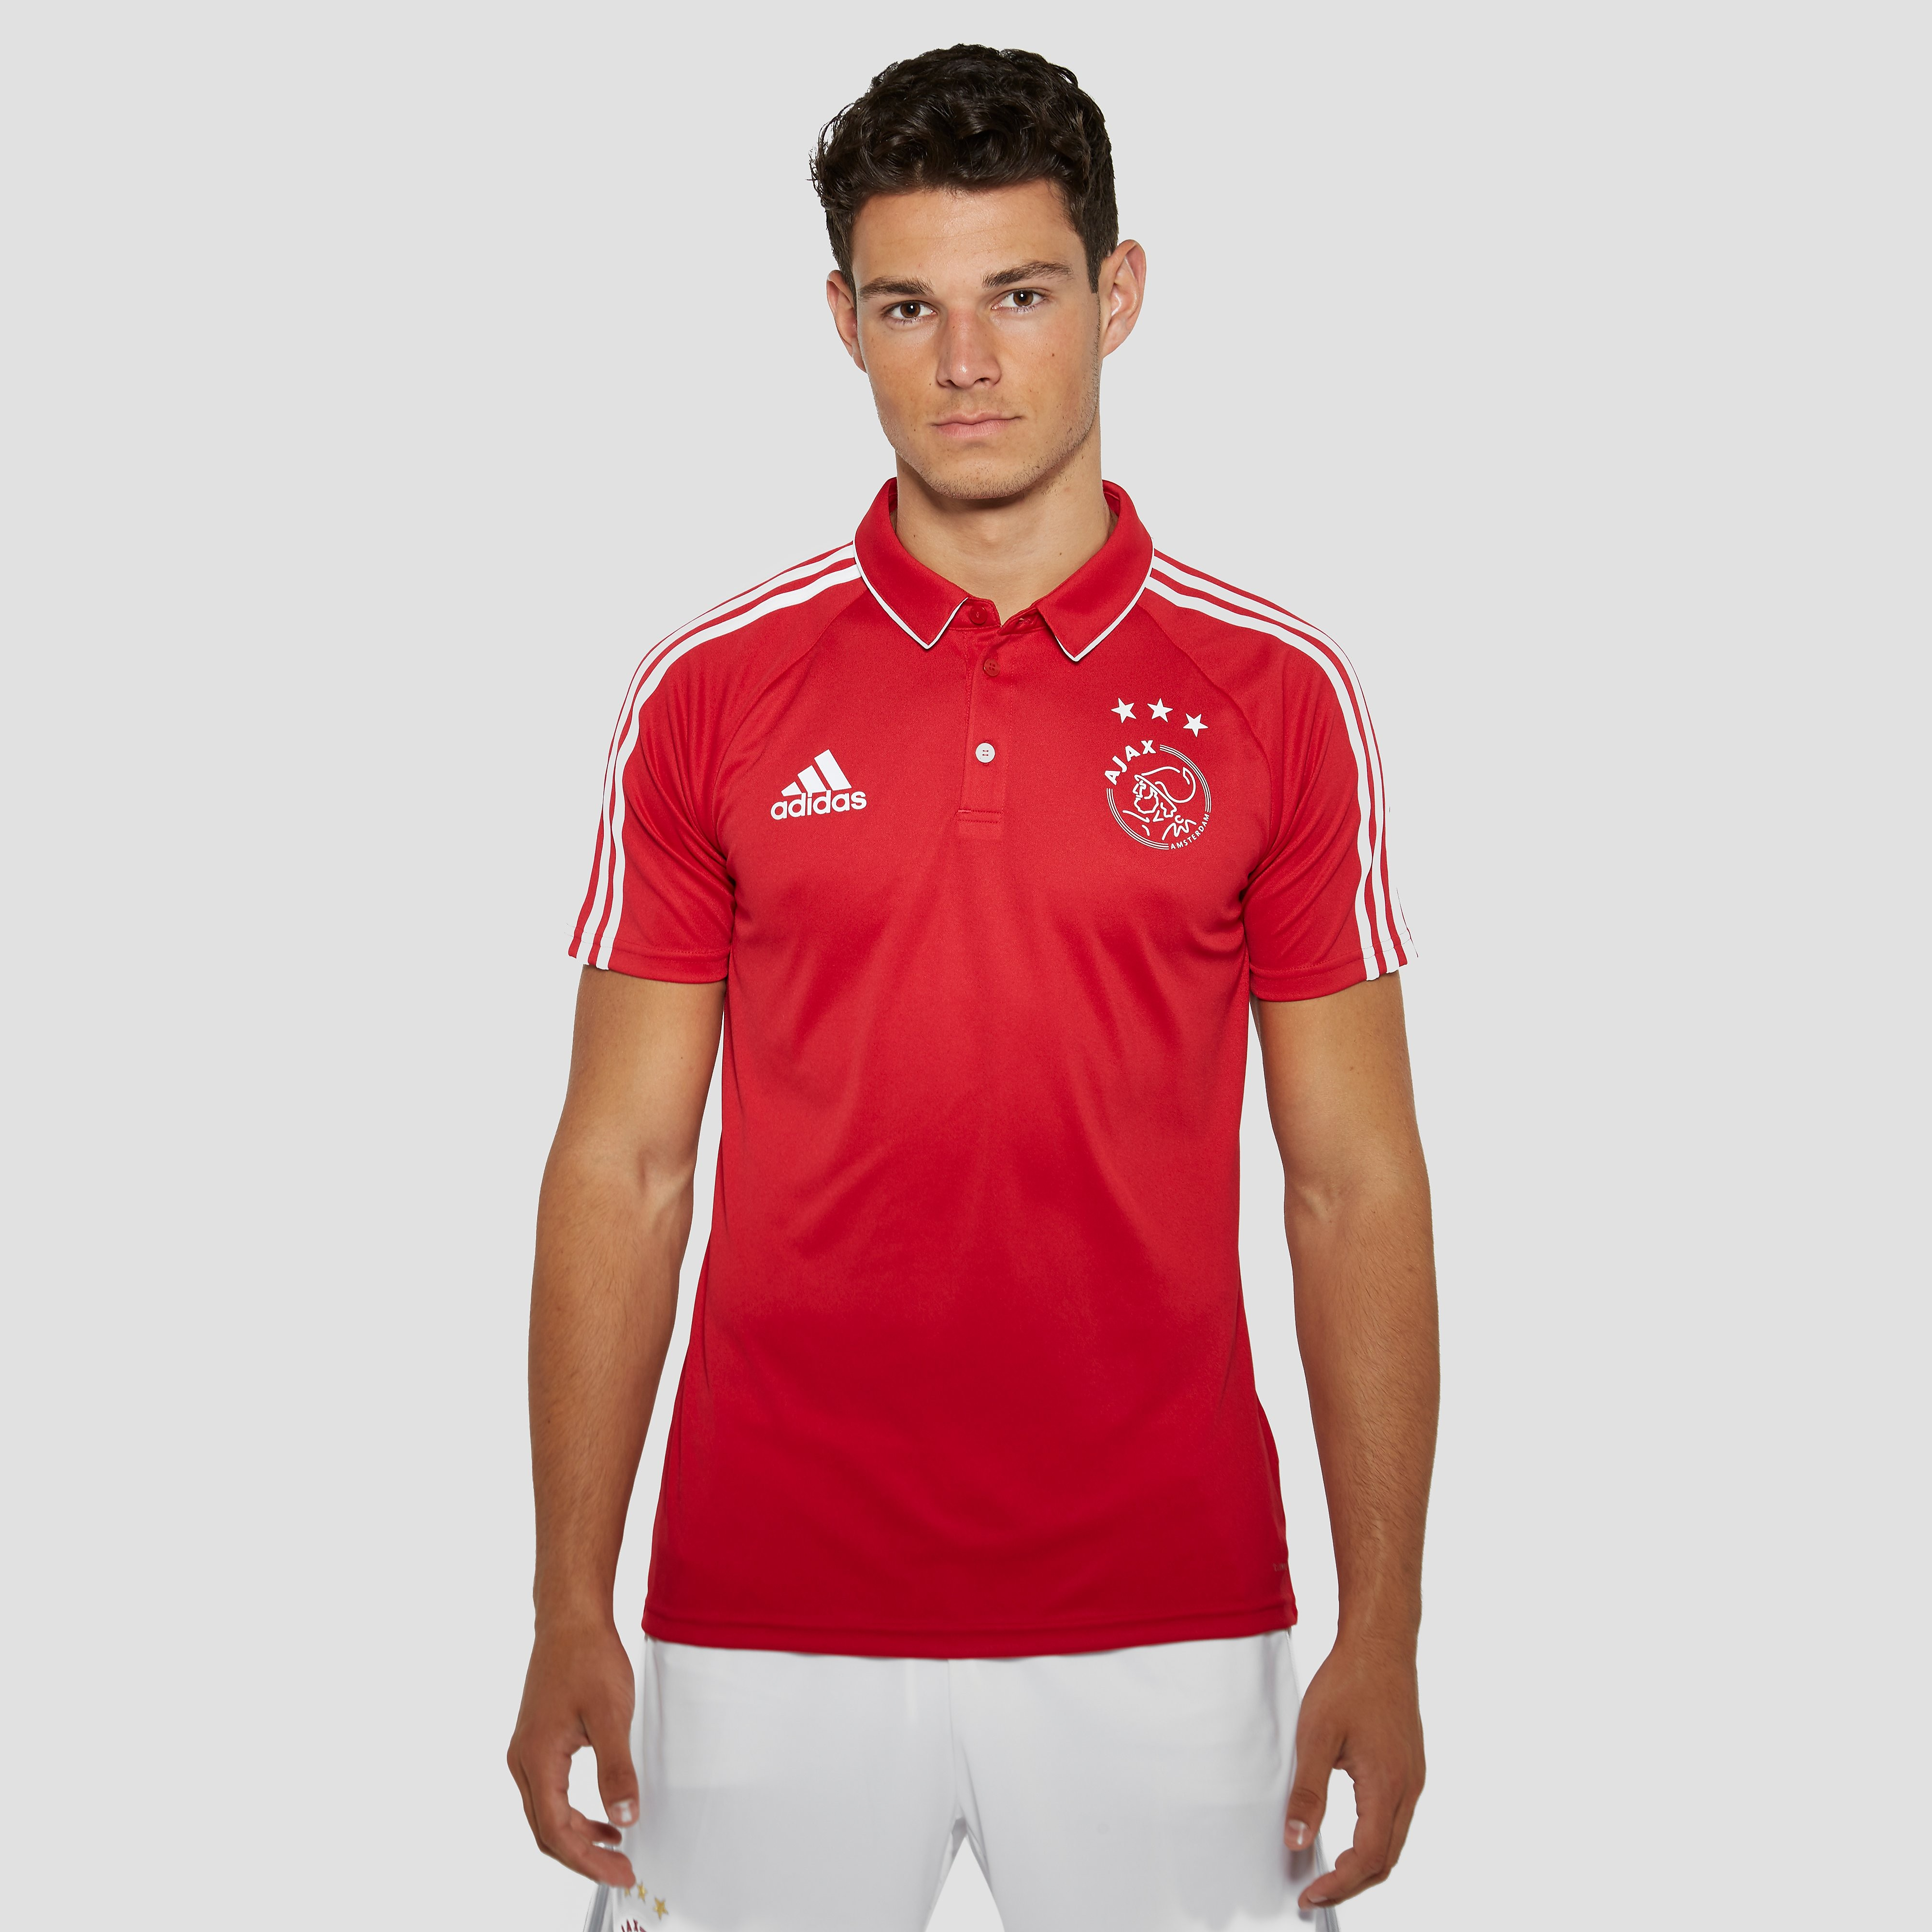 ADIDAS AJAX THUISPOLO 17/18 ROOD/WIT HEREN